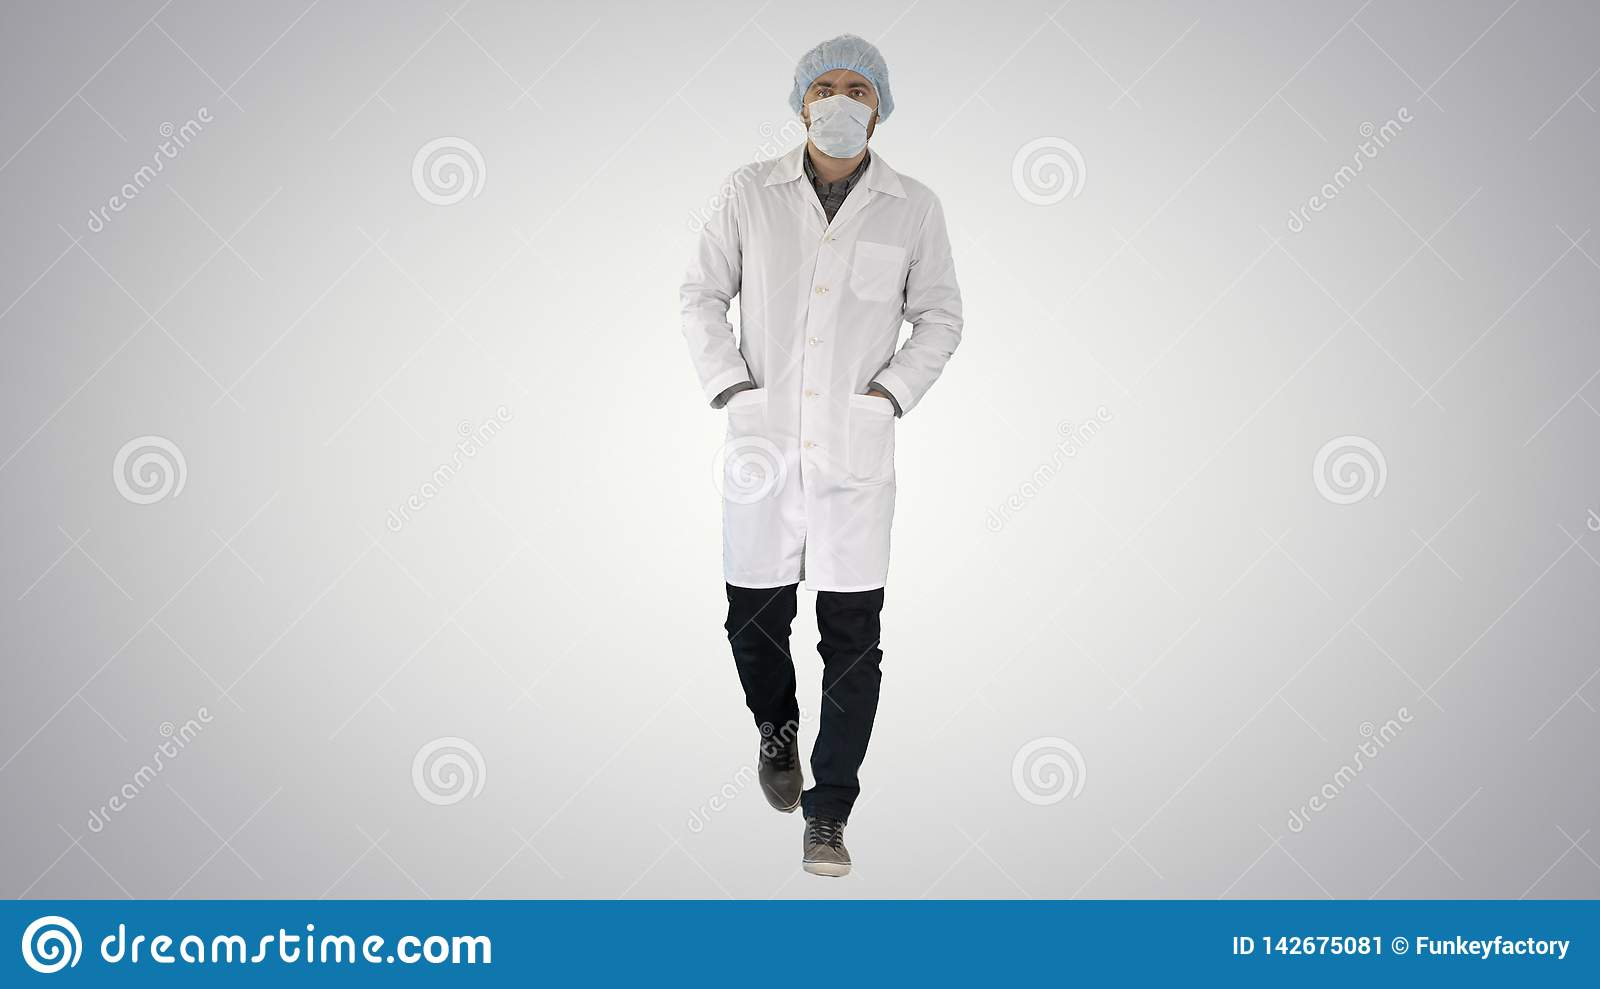 Walking young male doctor wearing surgical mask on gradient background.